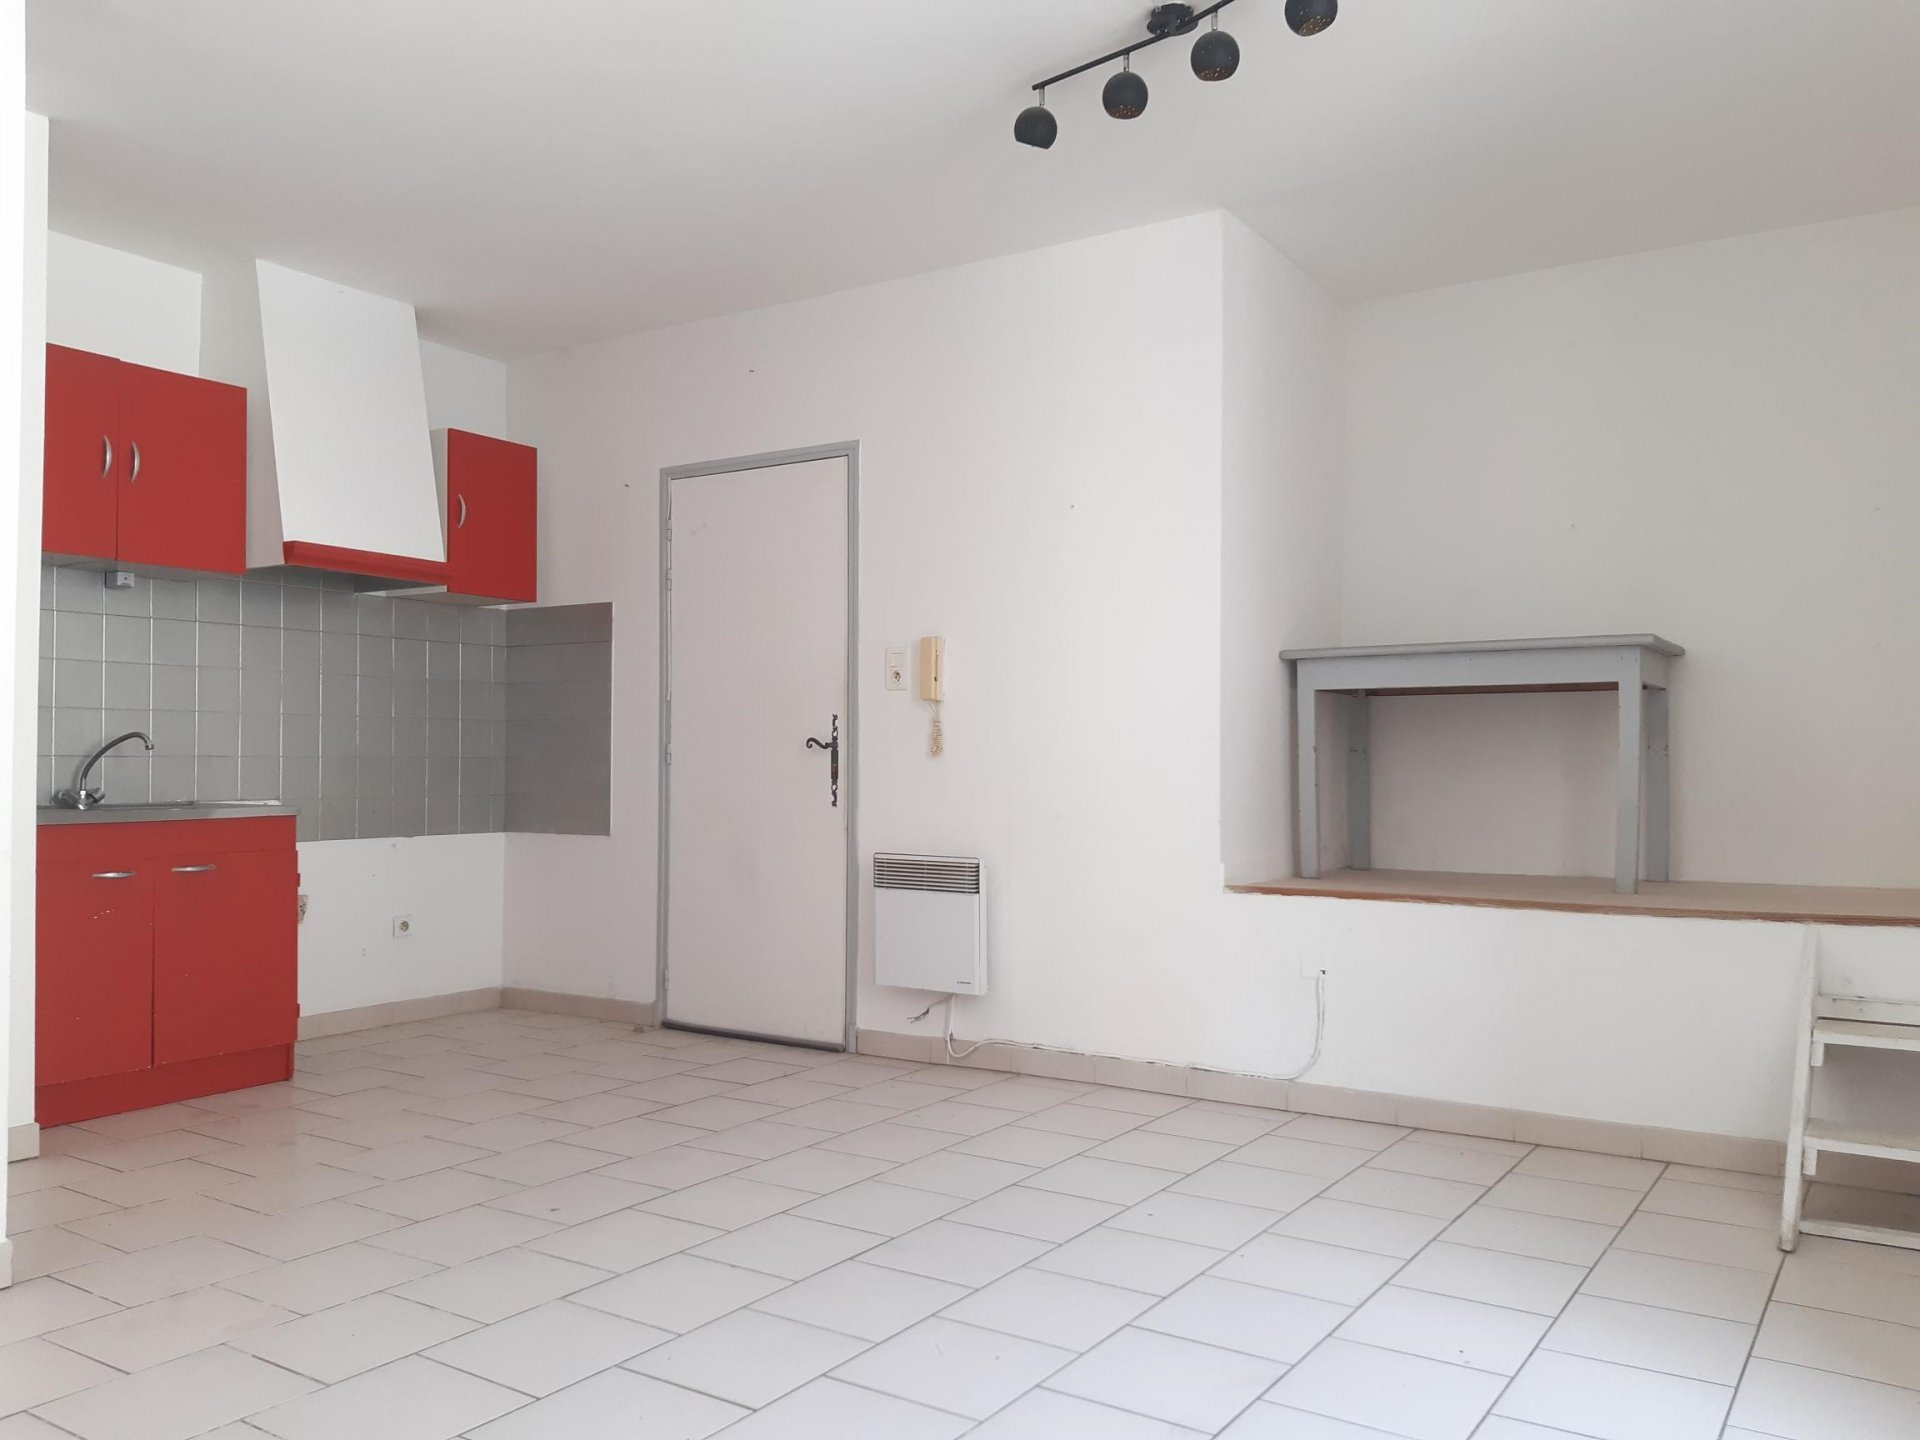 Location Appartement TARASCON Mandat : 3688